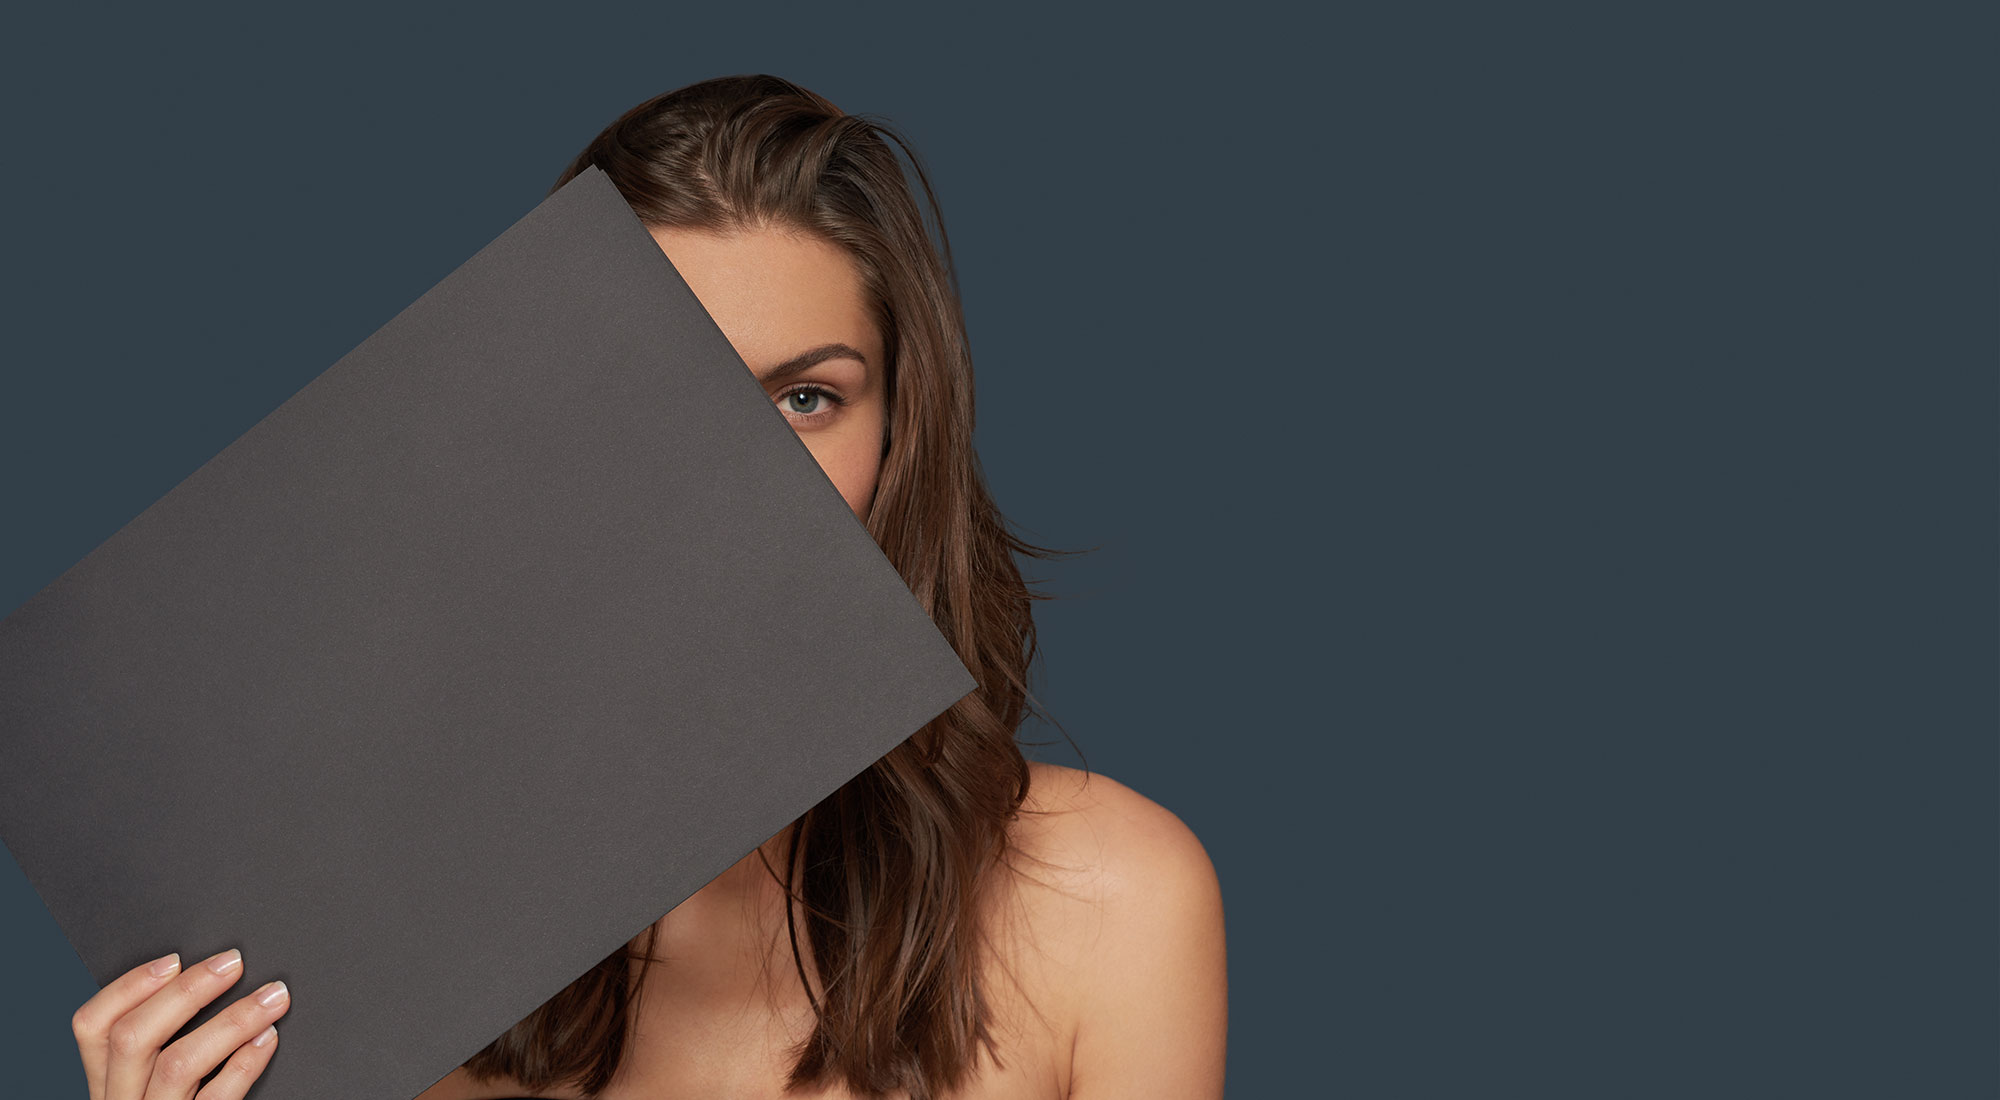 amiea model holding a grey piece of paper on a dark grey background